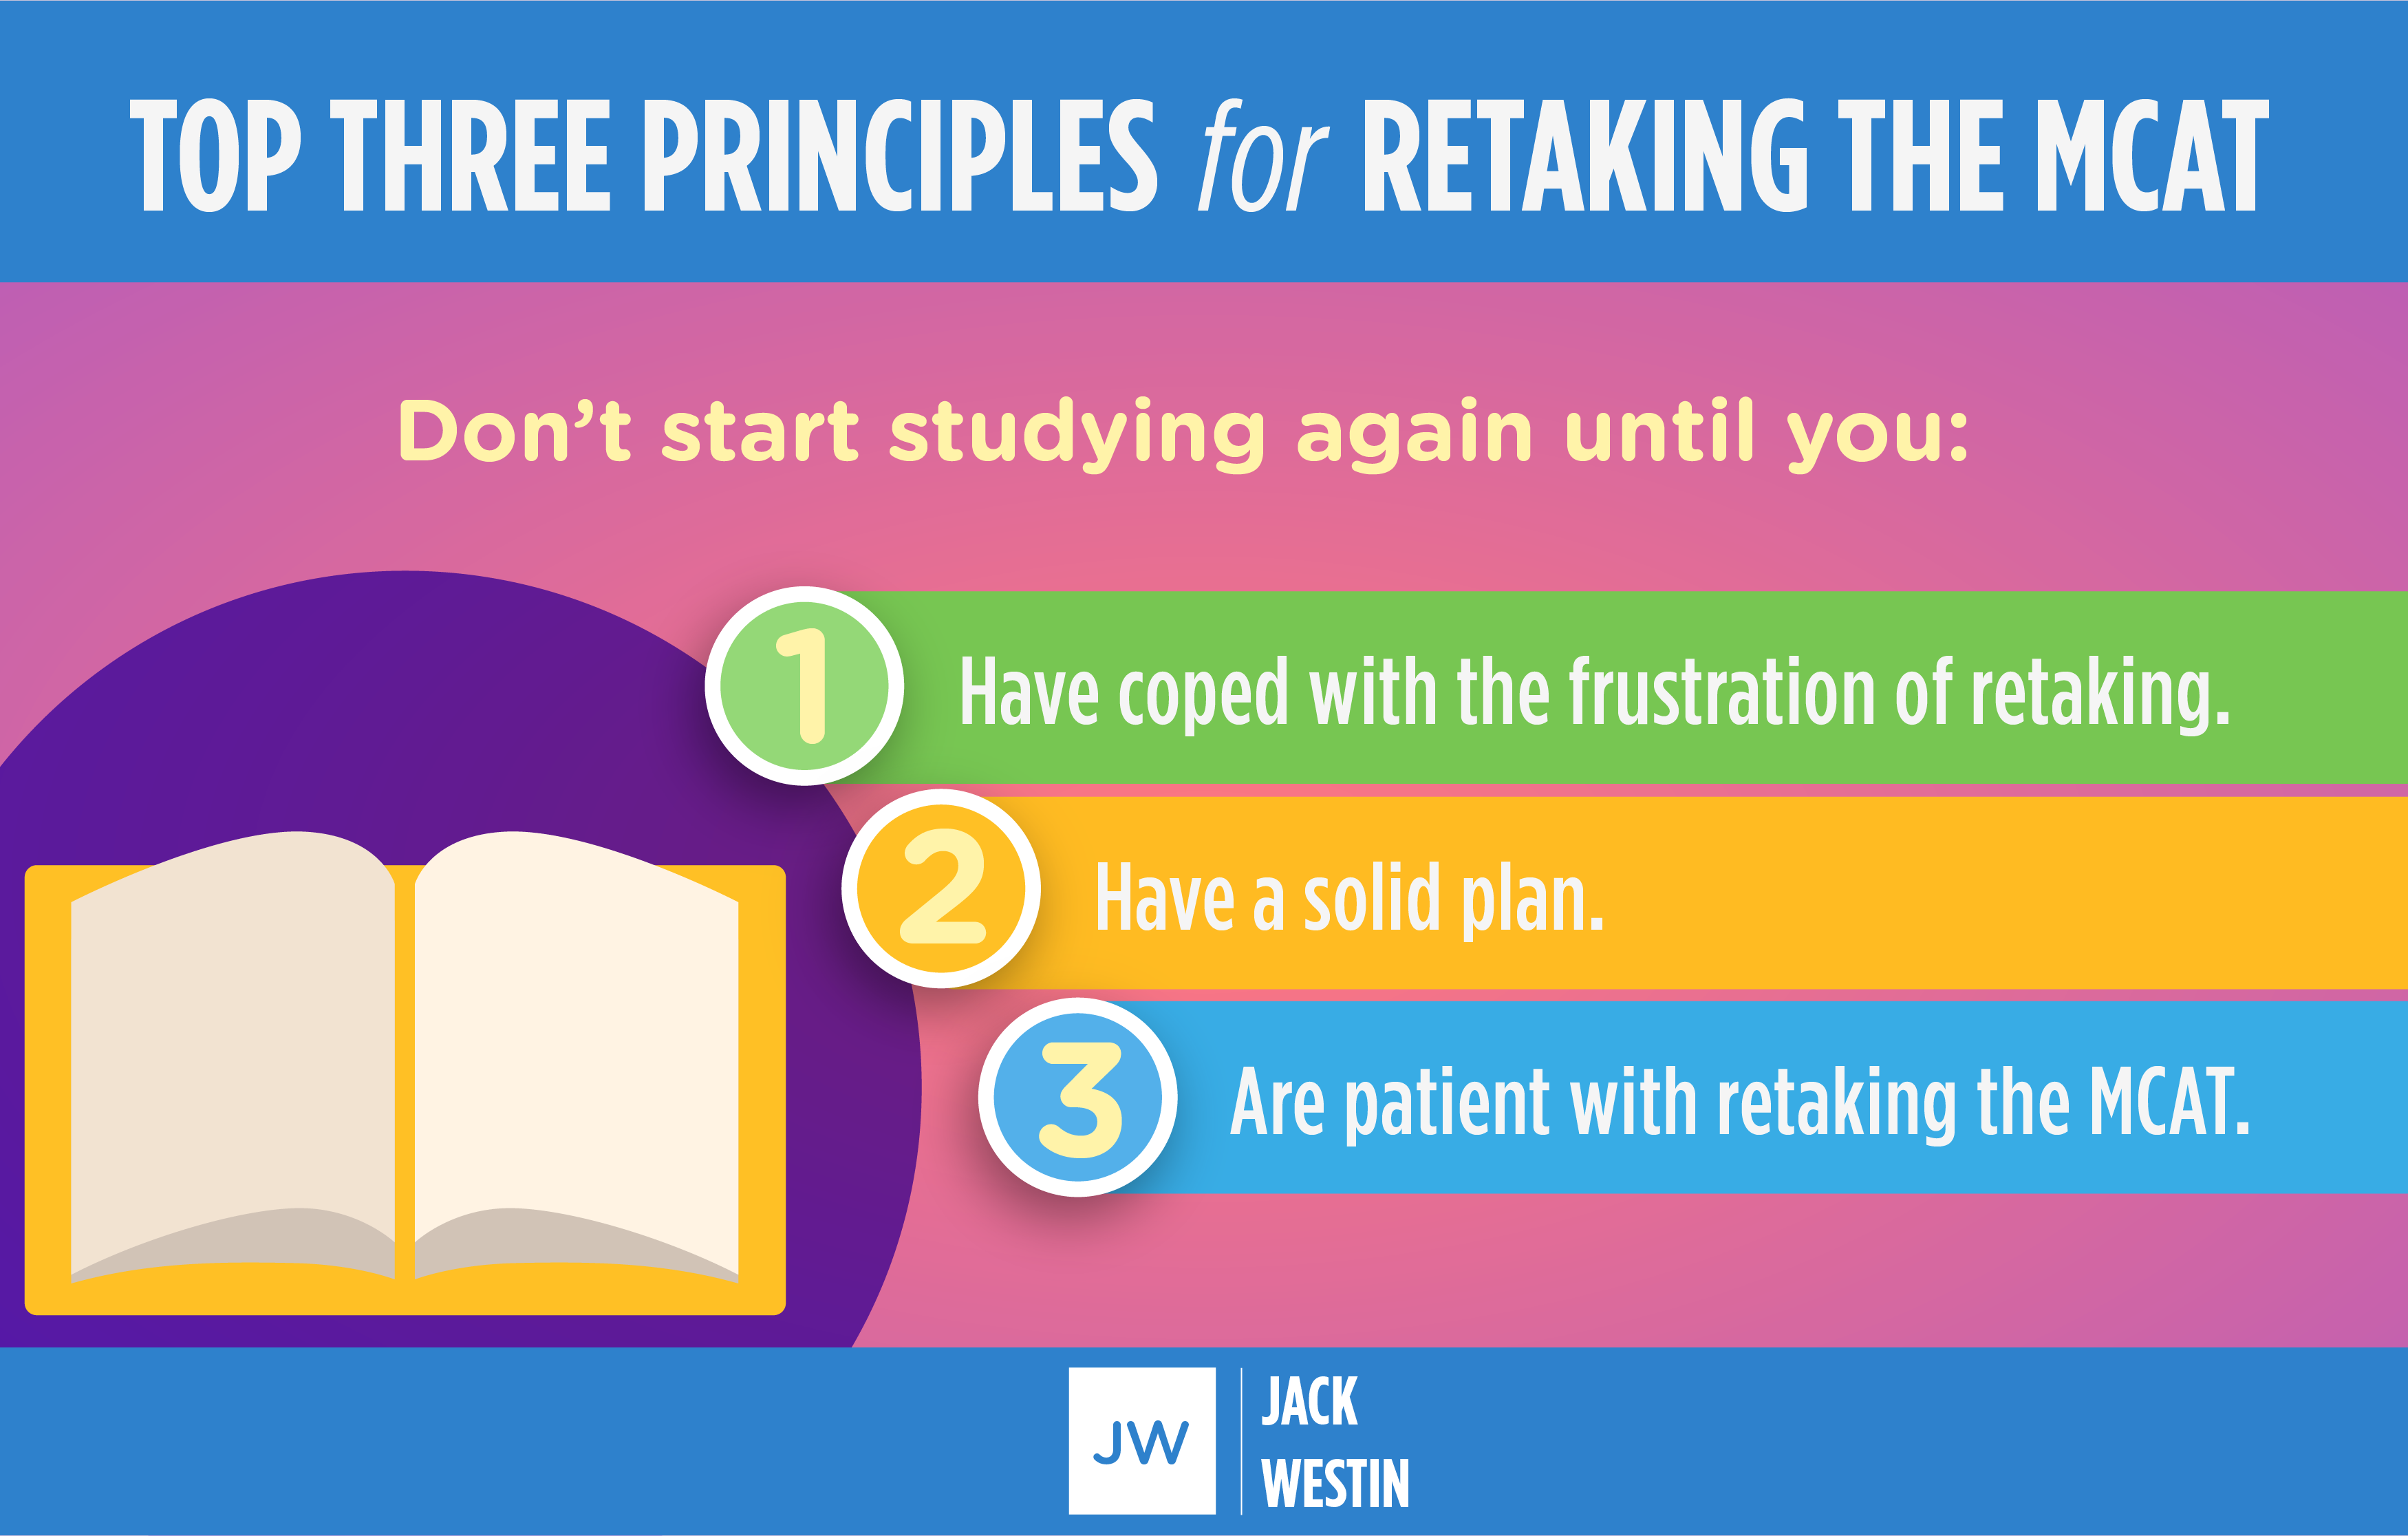 If you decided to retake MCAT this is the top three principles.